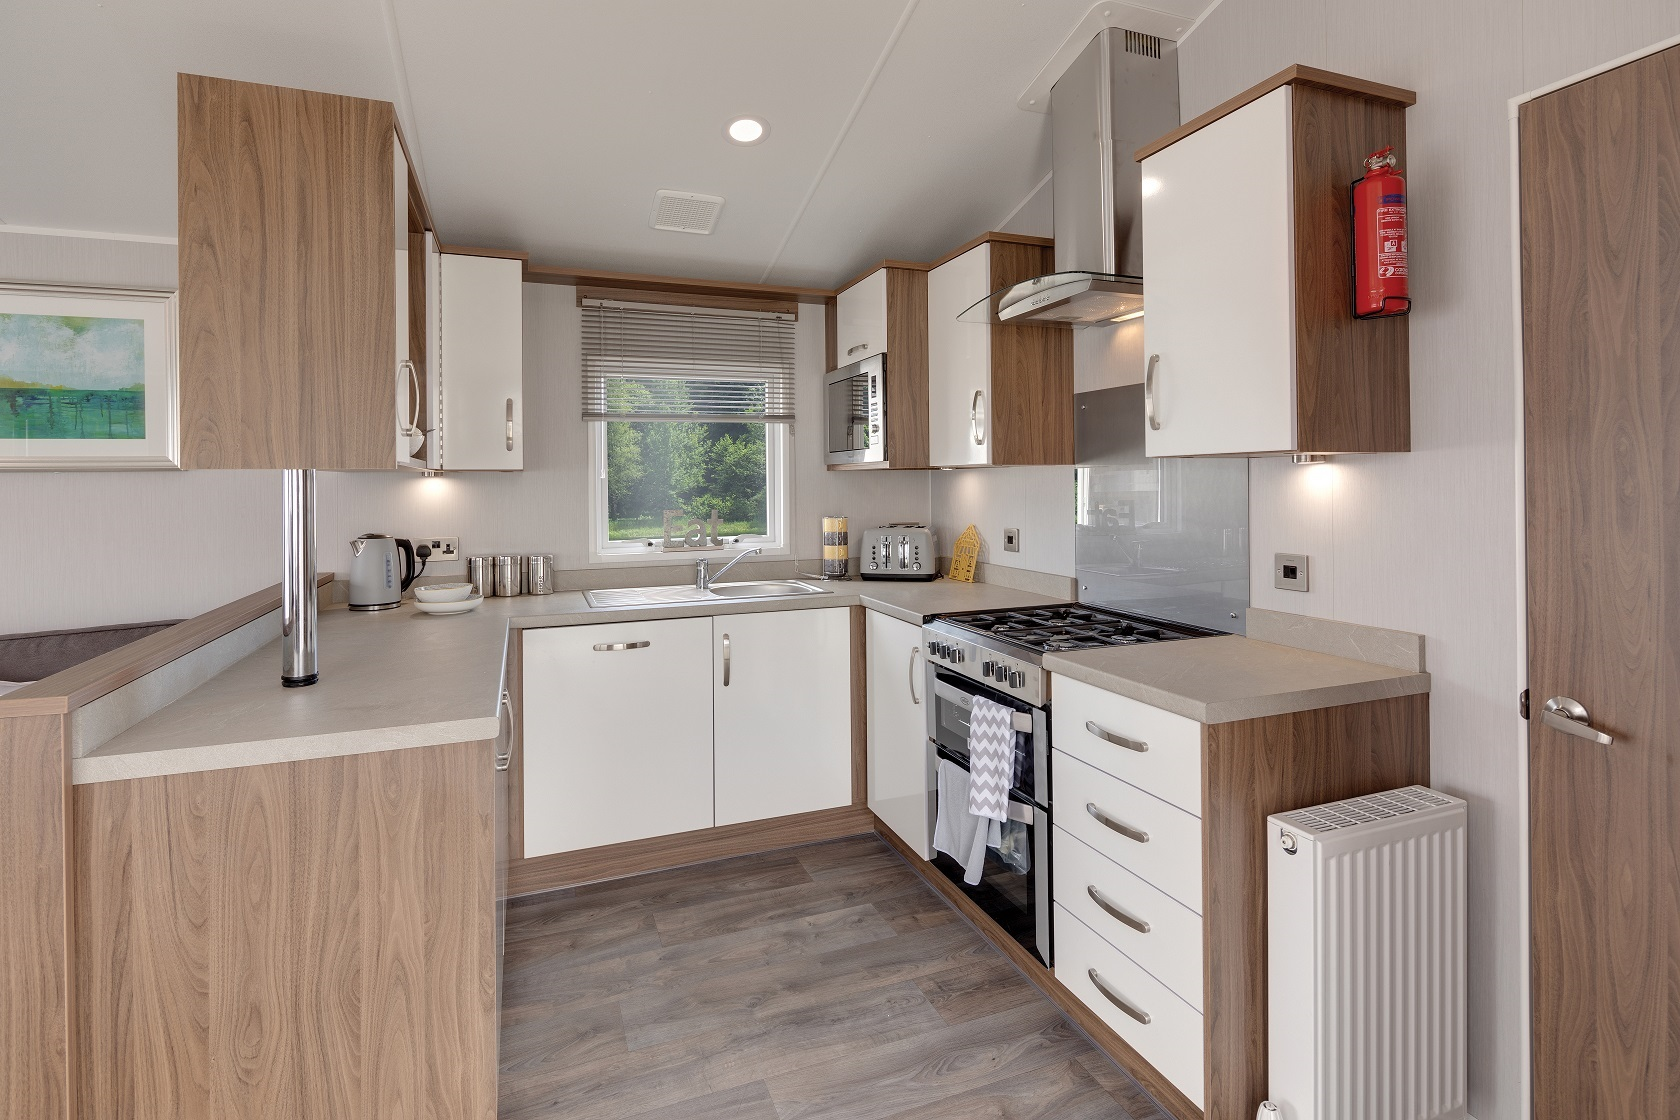 Willerby Avonmore: Static Caravans and Holiday Homes for Sale on Caravan Parks, Frosterley, Durham and Weardale Large Image 2